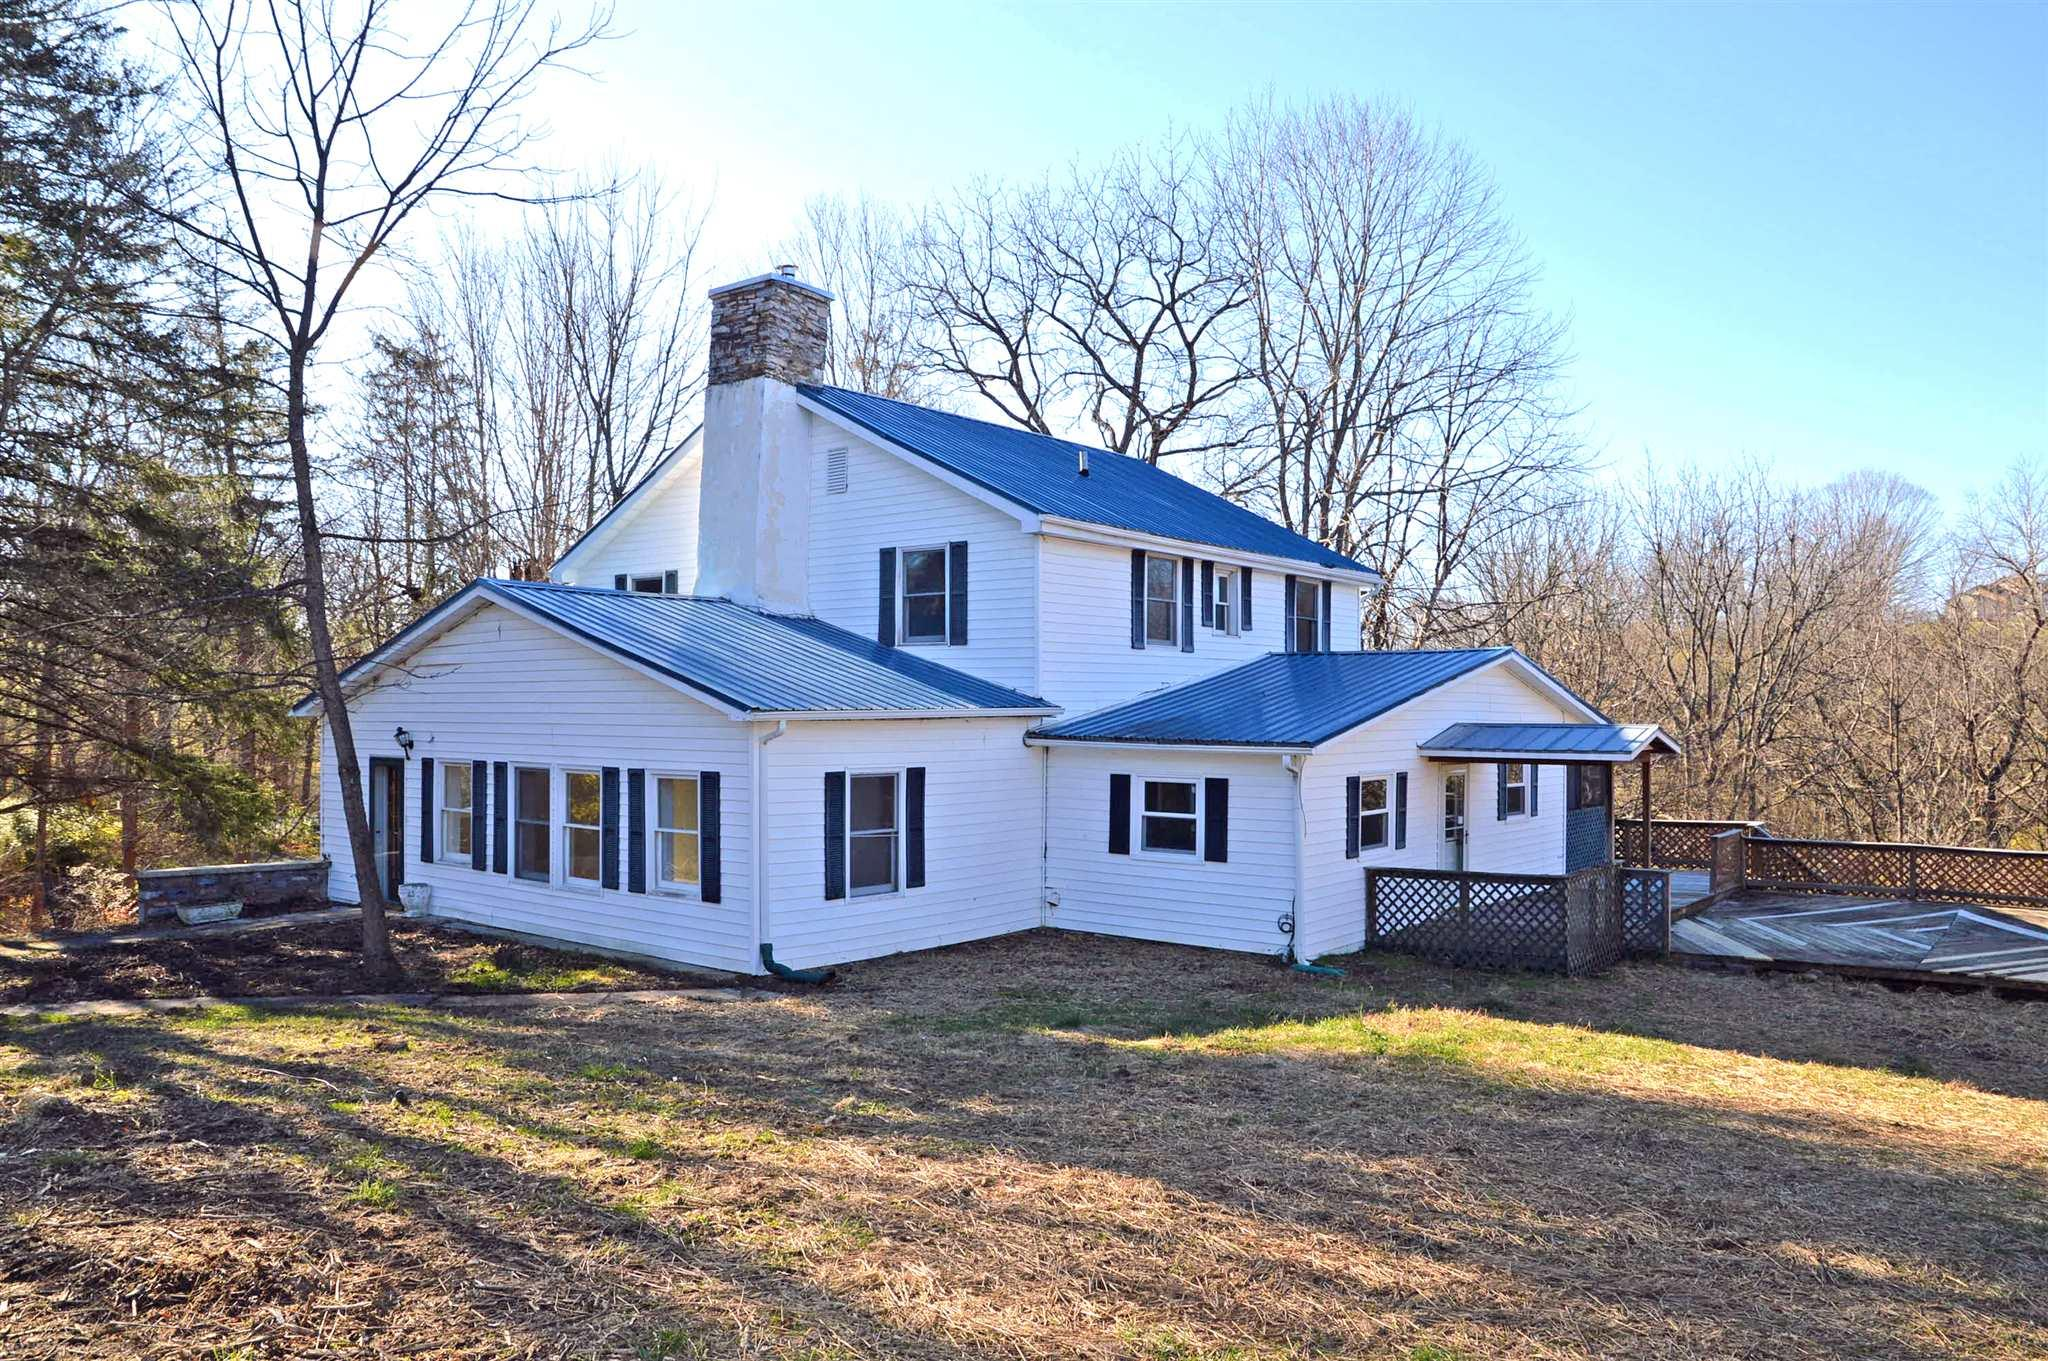 Check out the beautiful 5 acre setting for this 2685sf 4BR/2BA authentic farmhouse!  The fenced land is gorgeous and features a crystal clear twin springs with a stone springhouse, which feeds a bold brook that empties into Neck Creek which runs through the lower portion of the land.  The farmhouse offers large rooms and character at every turn.  Original hardwoods in almost every room.  The living room has a fireplace and built-in bookshelves. The huge main-level laundry room has a walk-in pantry. 3 bedrooms have cedar-lined walk-in closets. Some updates have been completed, most recently some fresh paint and new LVP floors in kitchen, breakfast room and laundry room.  A large screened porch and deck extend the living space outdoors.  A paved circular driveway is anchored by stacked stone columns.  Metal roof.  Call to tour today!